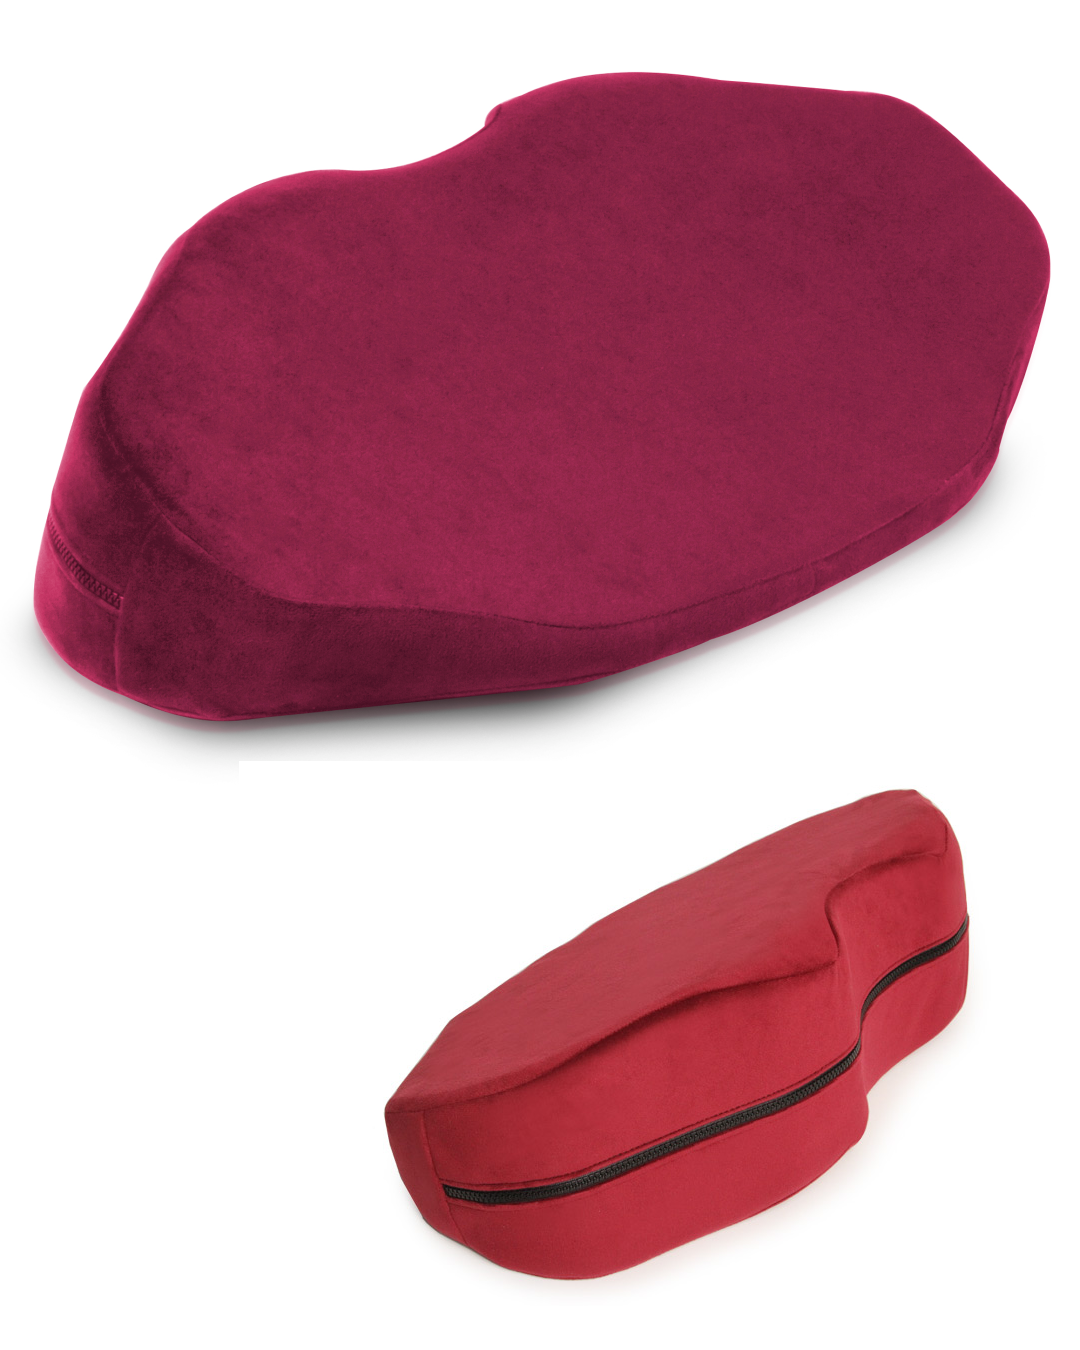 Liberator Decor Arche Wedge Sex Positioning Cushion - Assorted Colors merlot